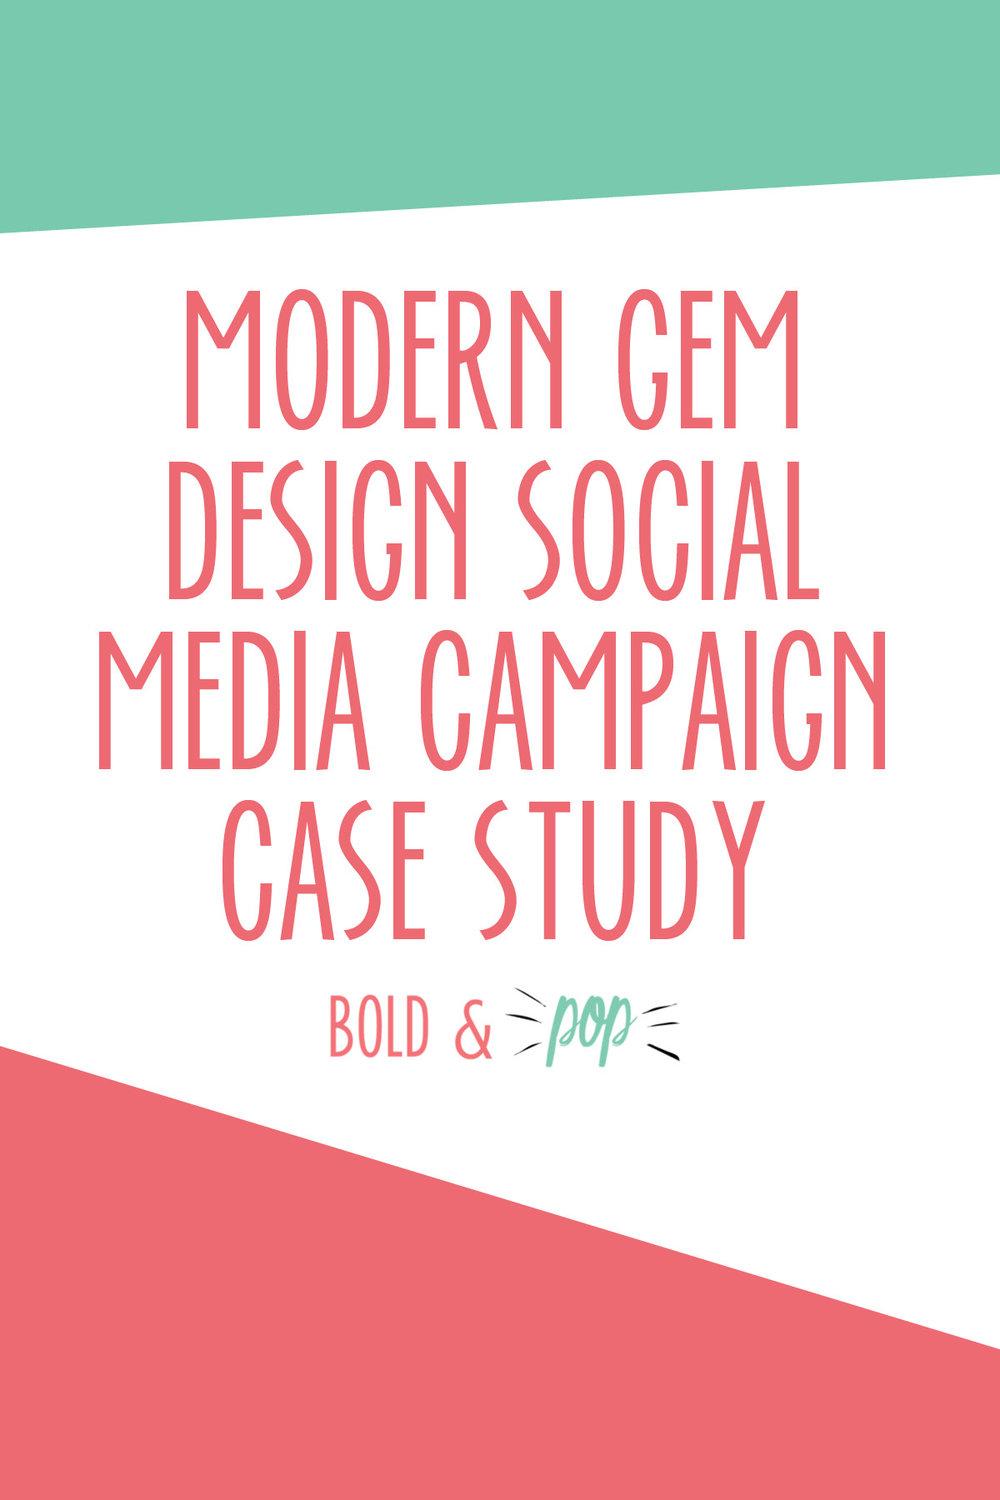 Bold & Pop Social Media Agency : Modern Gem Design Social Media Campaign Case Study -- Strategy and Execution for Facebook, Instagram, Pinterest and LinkedIn